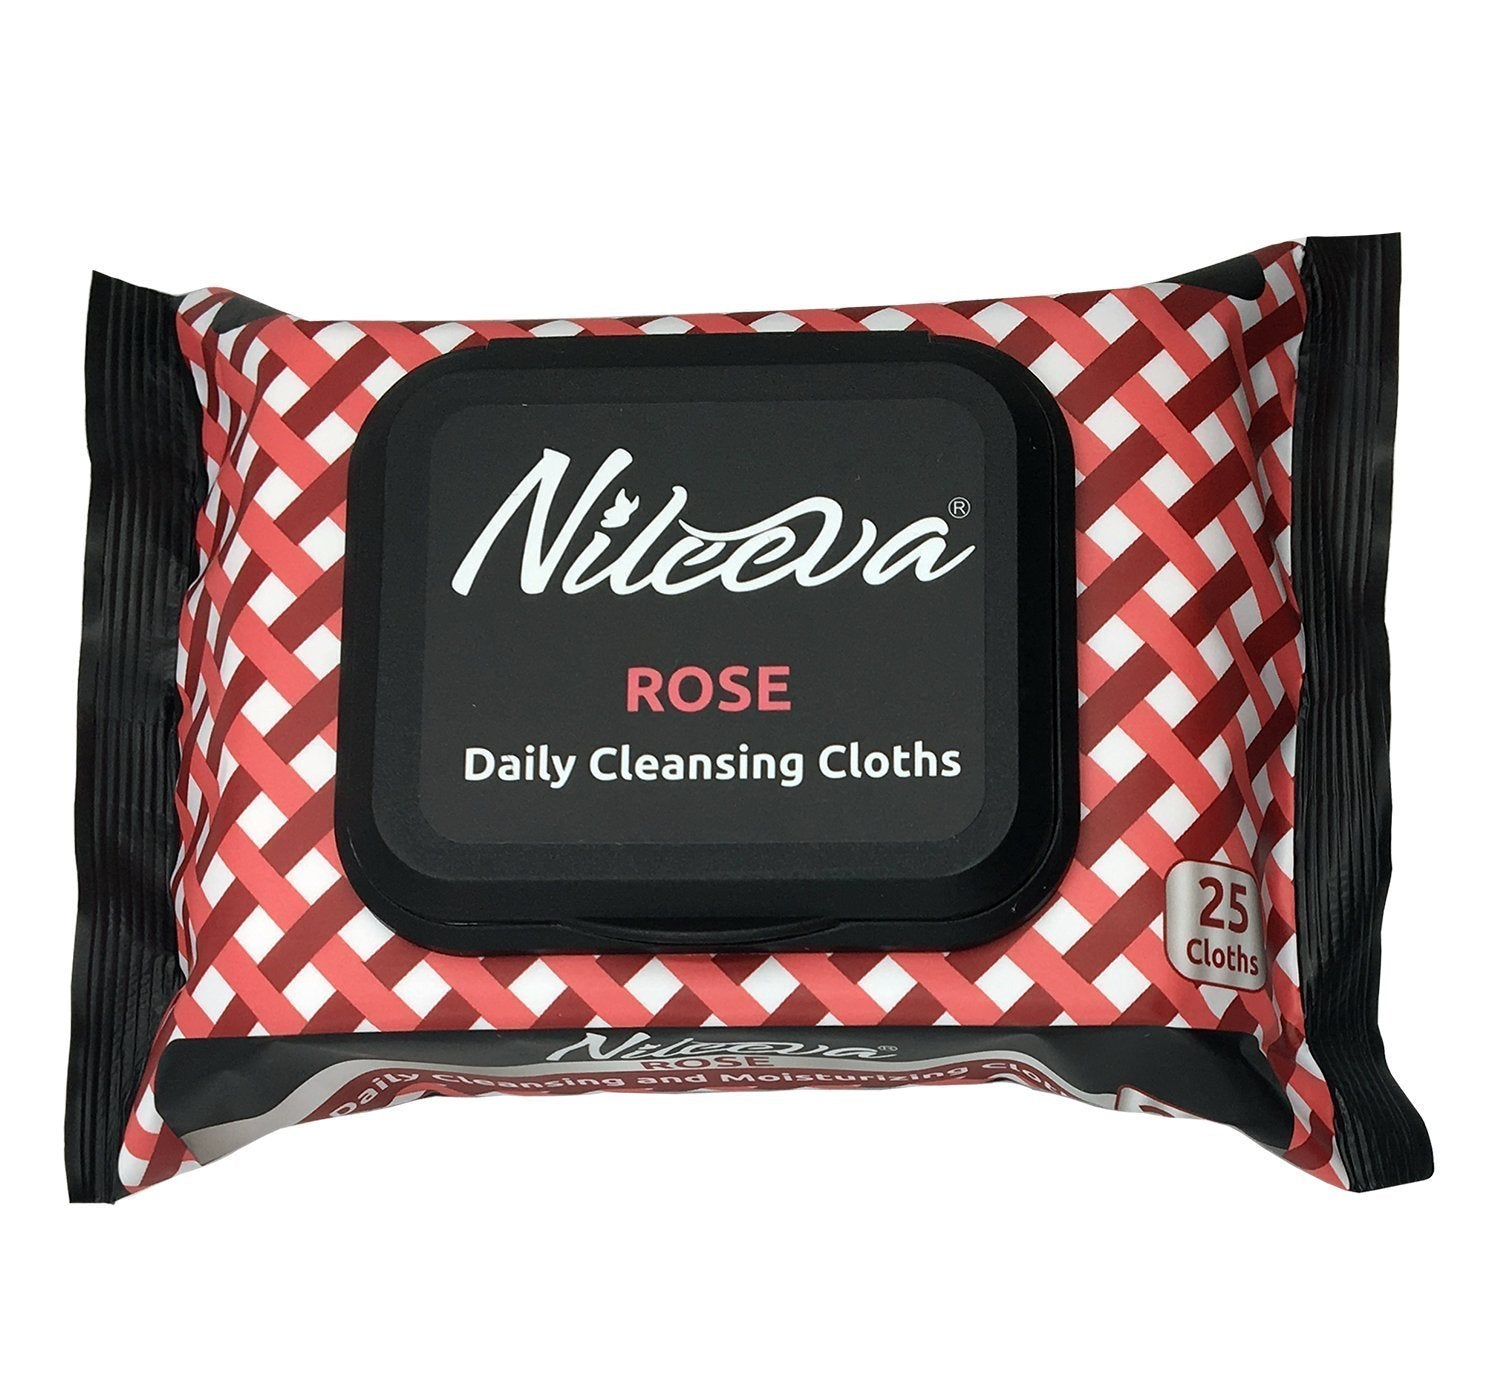 Nileeva Rose Daily Cleansing Cloths